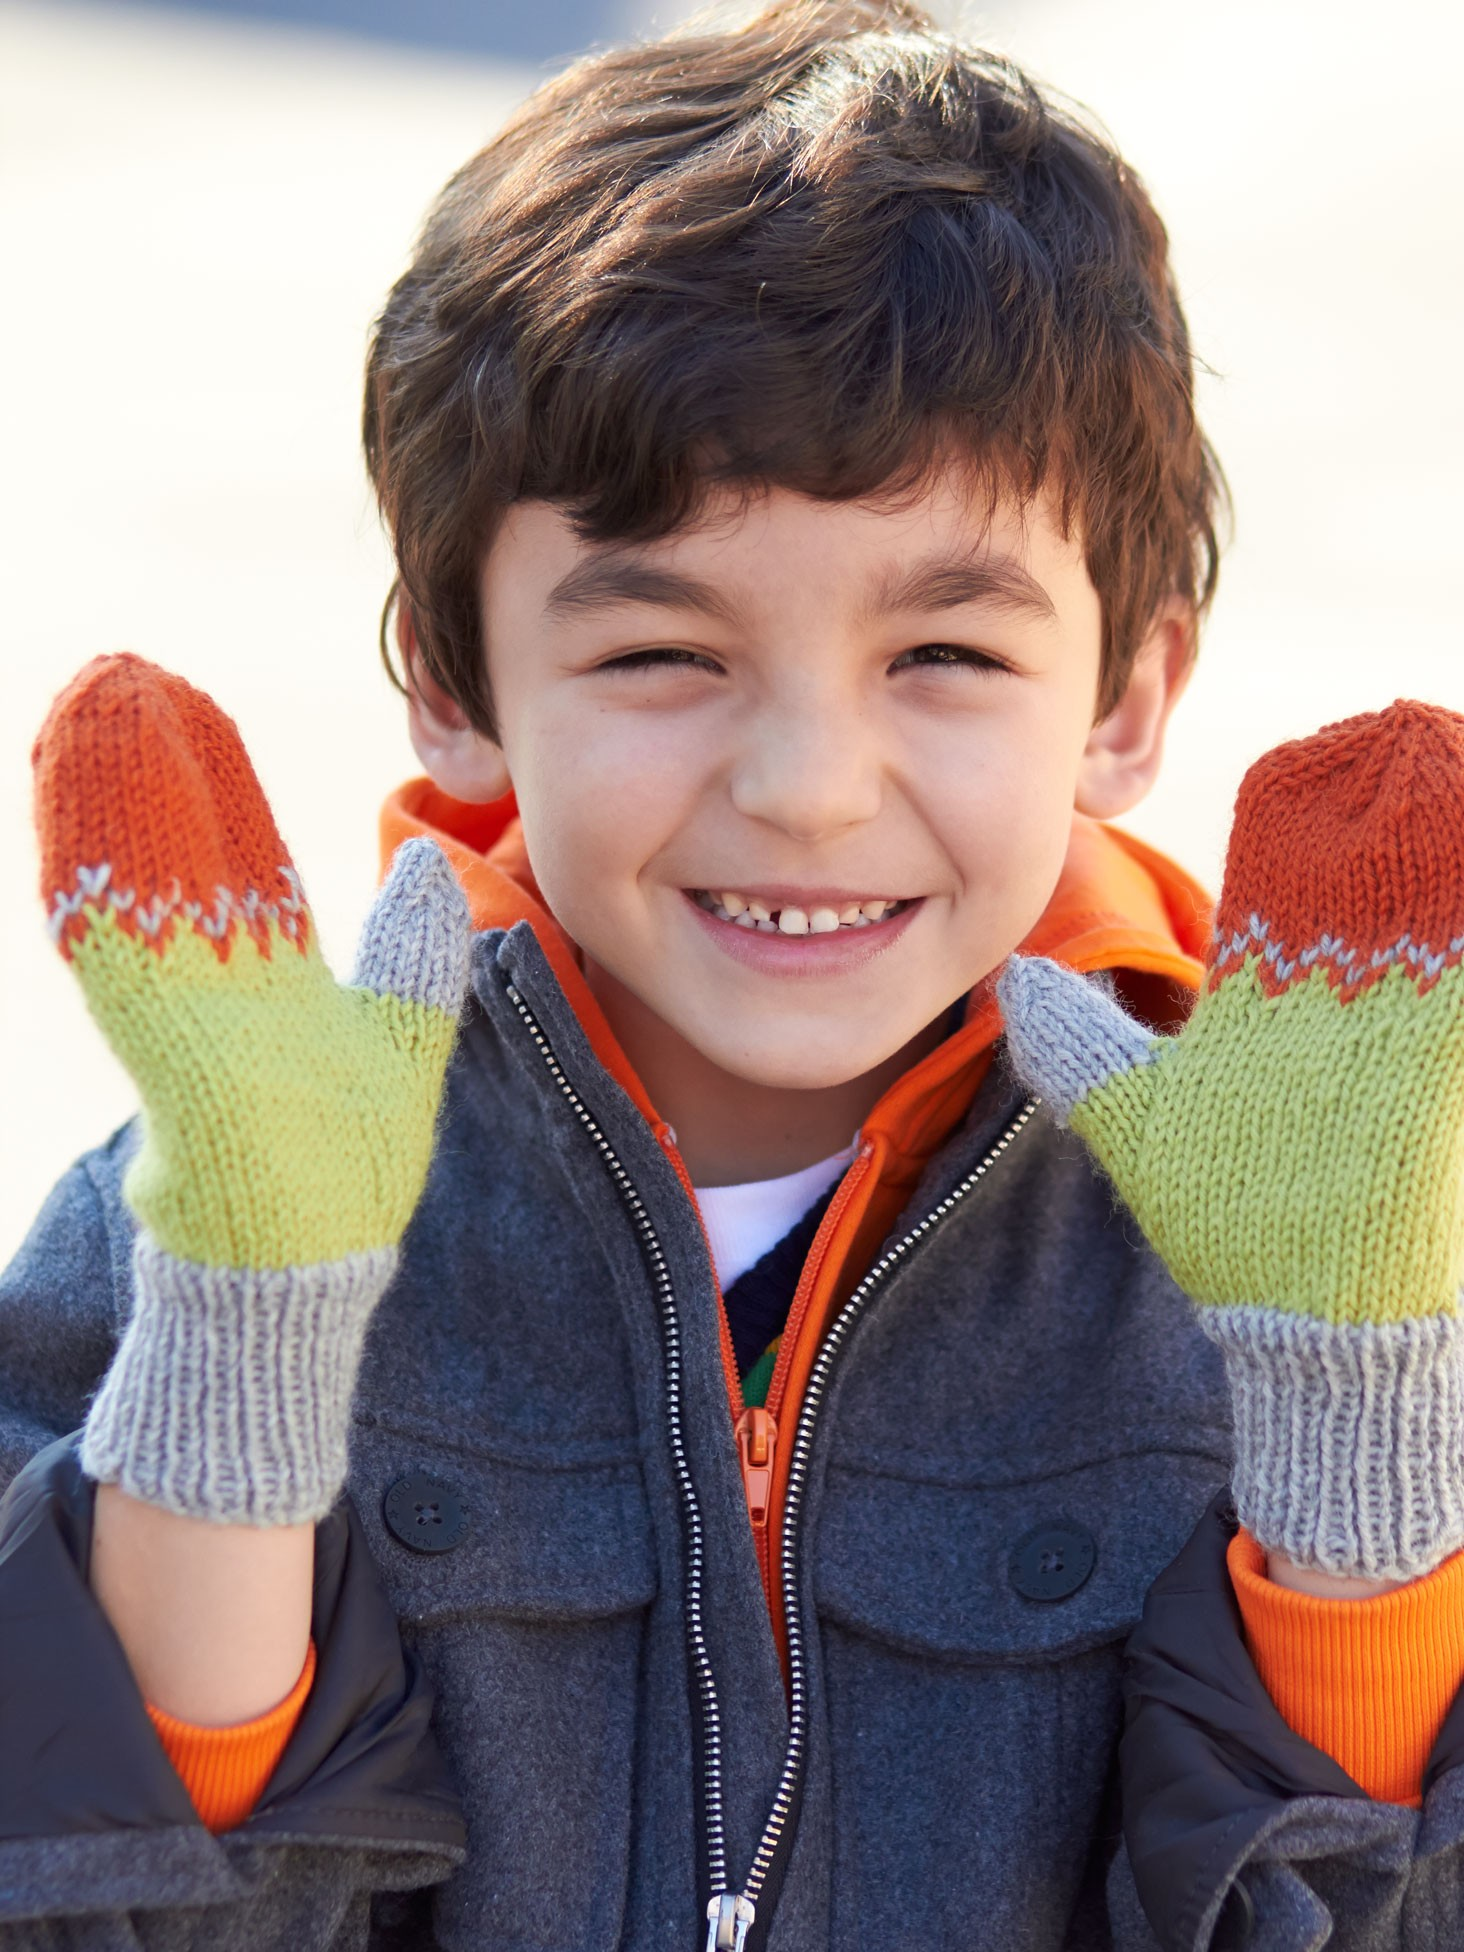 Patons Kids Tri-Color Mittens, Knit Pattern Yarnspirations